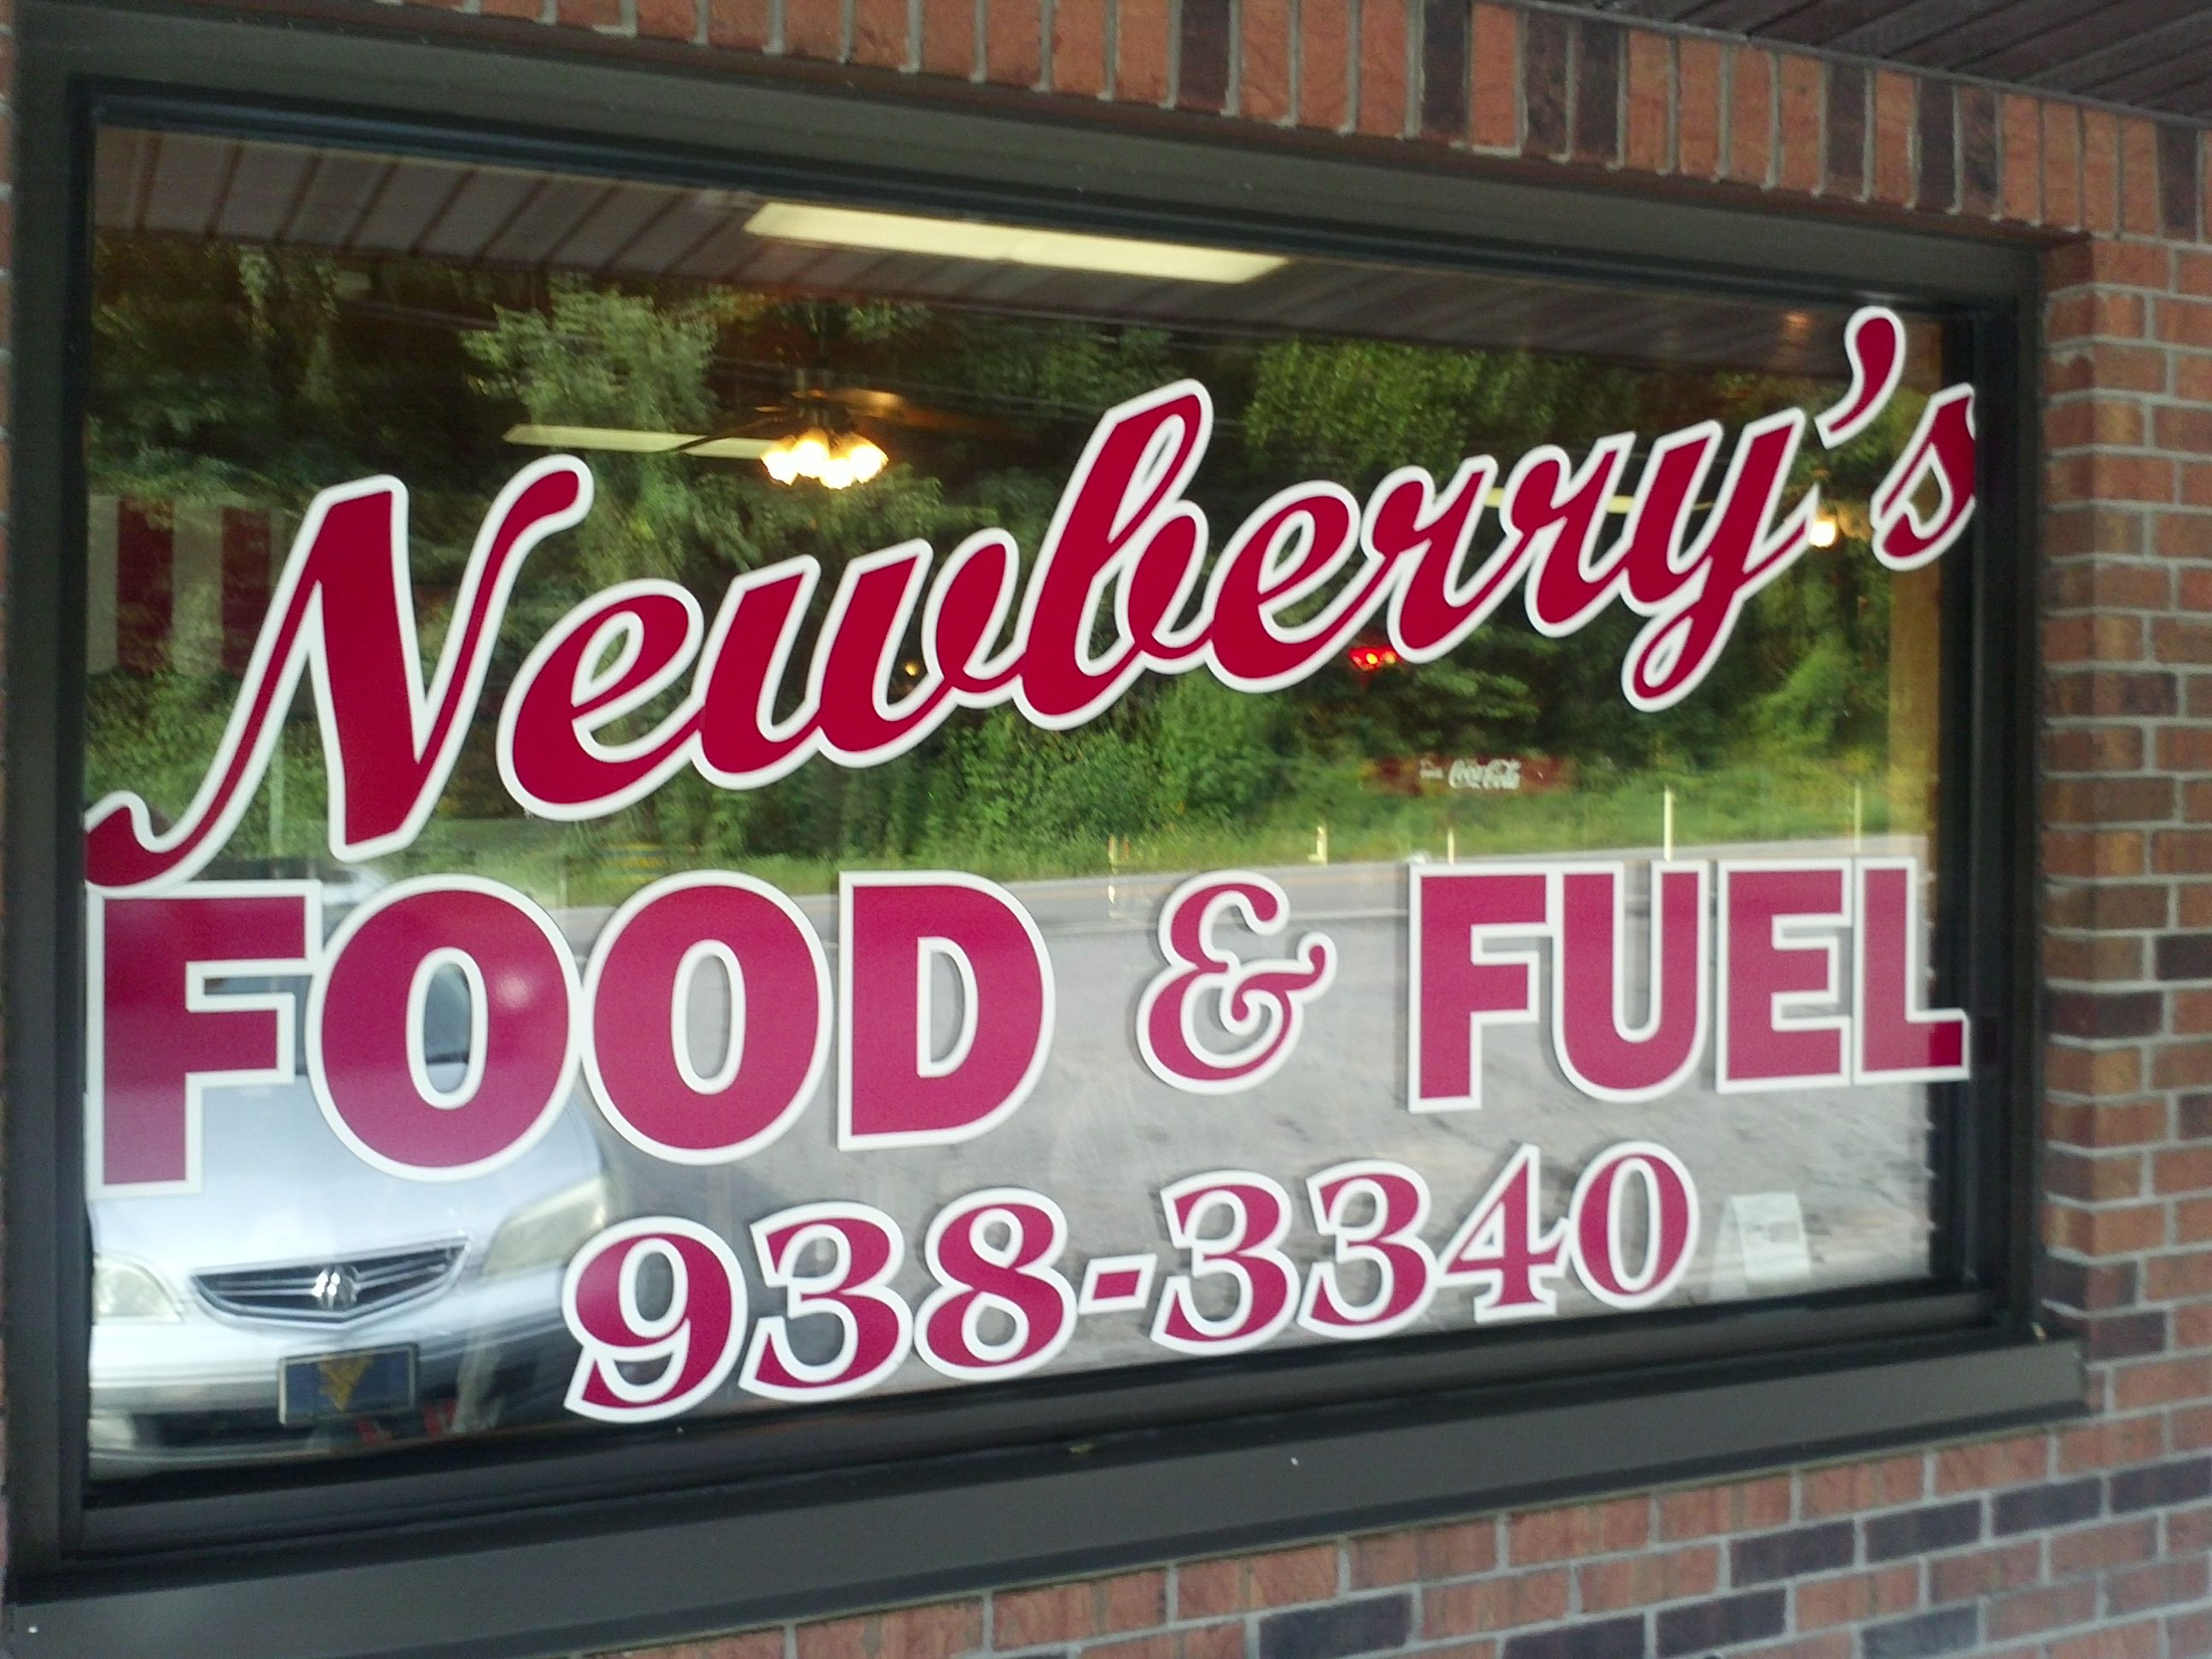 Newberry's Food & Fuel -          Newberry Food & Fuel is your store of convenience when you're traveling through Iaeger. Our café serves daily special meals such as Turkey Dressing and Meatloaf. We also serve soft ice-cream and milkshakes, blizzards and banana splits.  [Restaurants - > Cafe - > Mom & Pop] [Tourism - > Gas Stations]  http://www.wvyourway.com/west_virginia/restaurants.aspx  Iaeger, WV